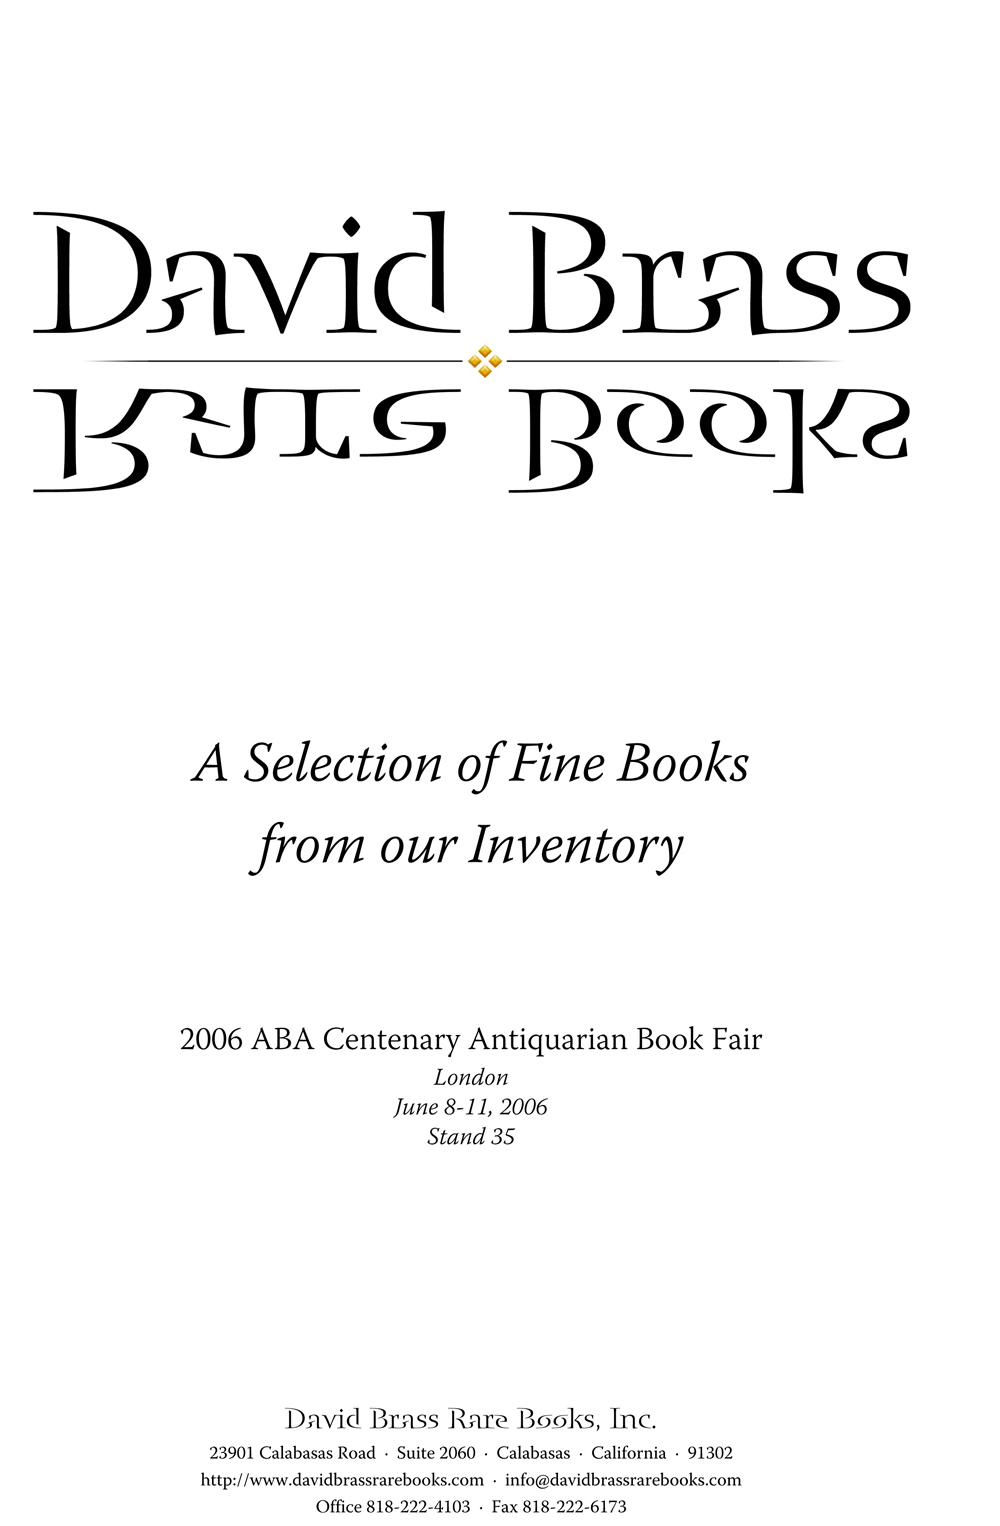 2006 ABA Centenary Antiquarian Book Fair